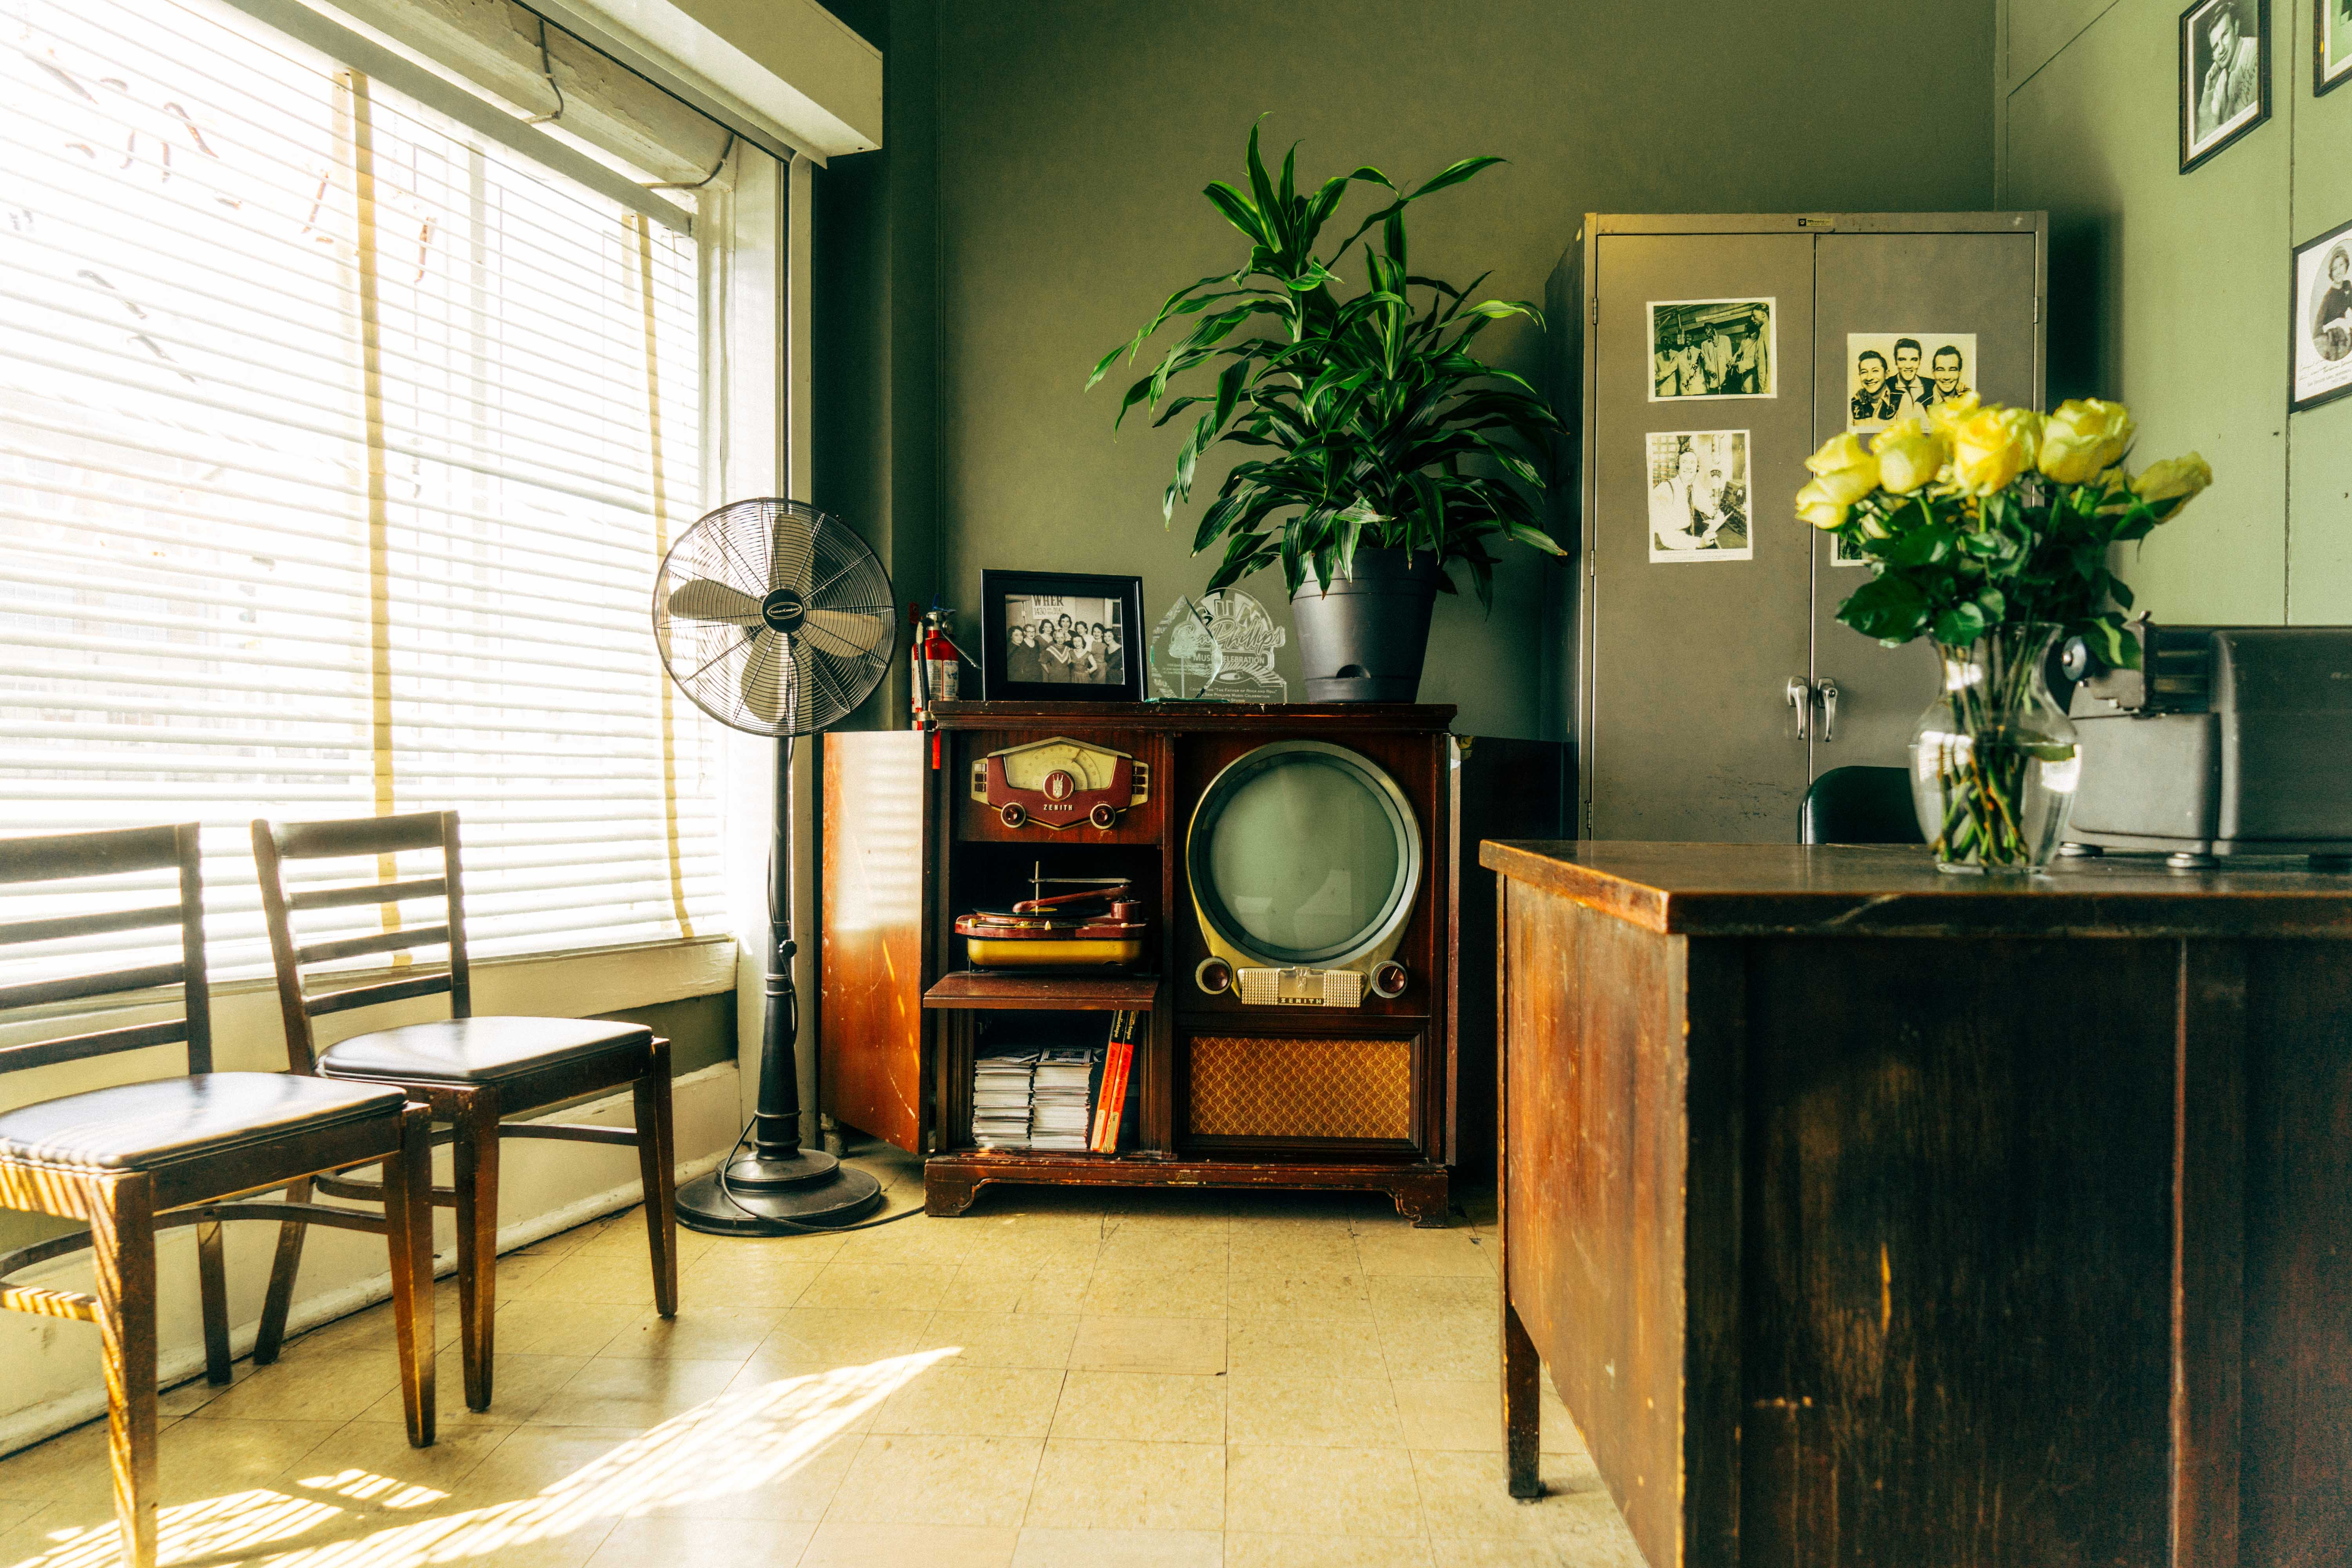 The interior of an office with vintage furniture 1960's decor midcentury